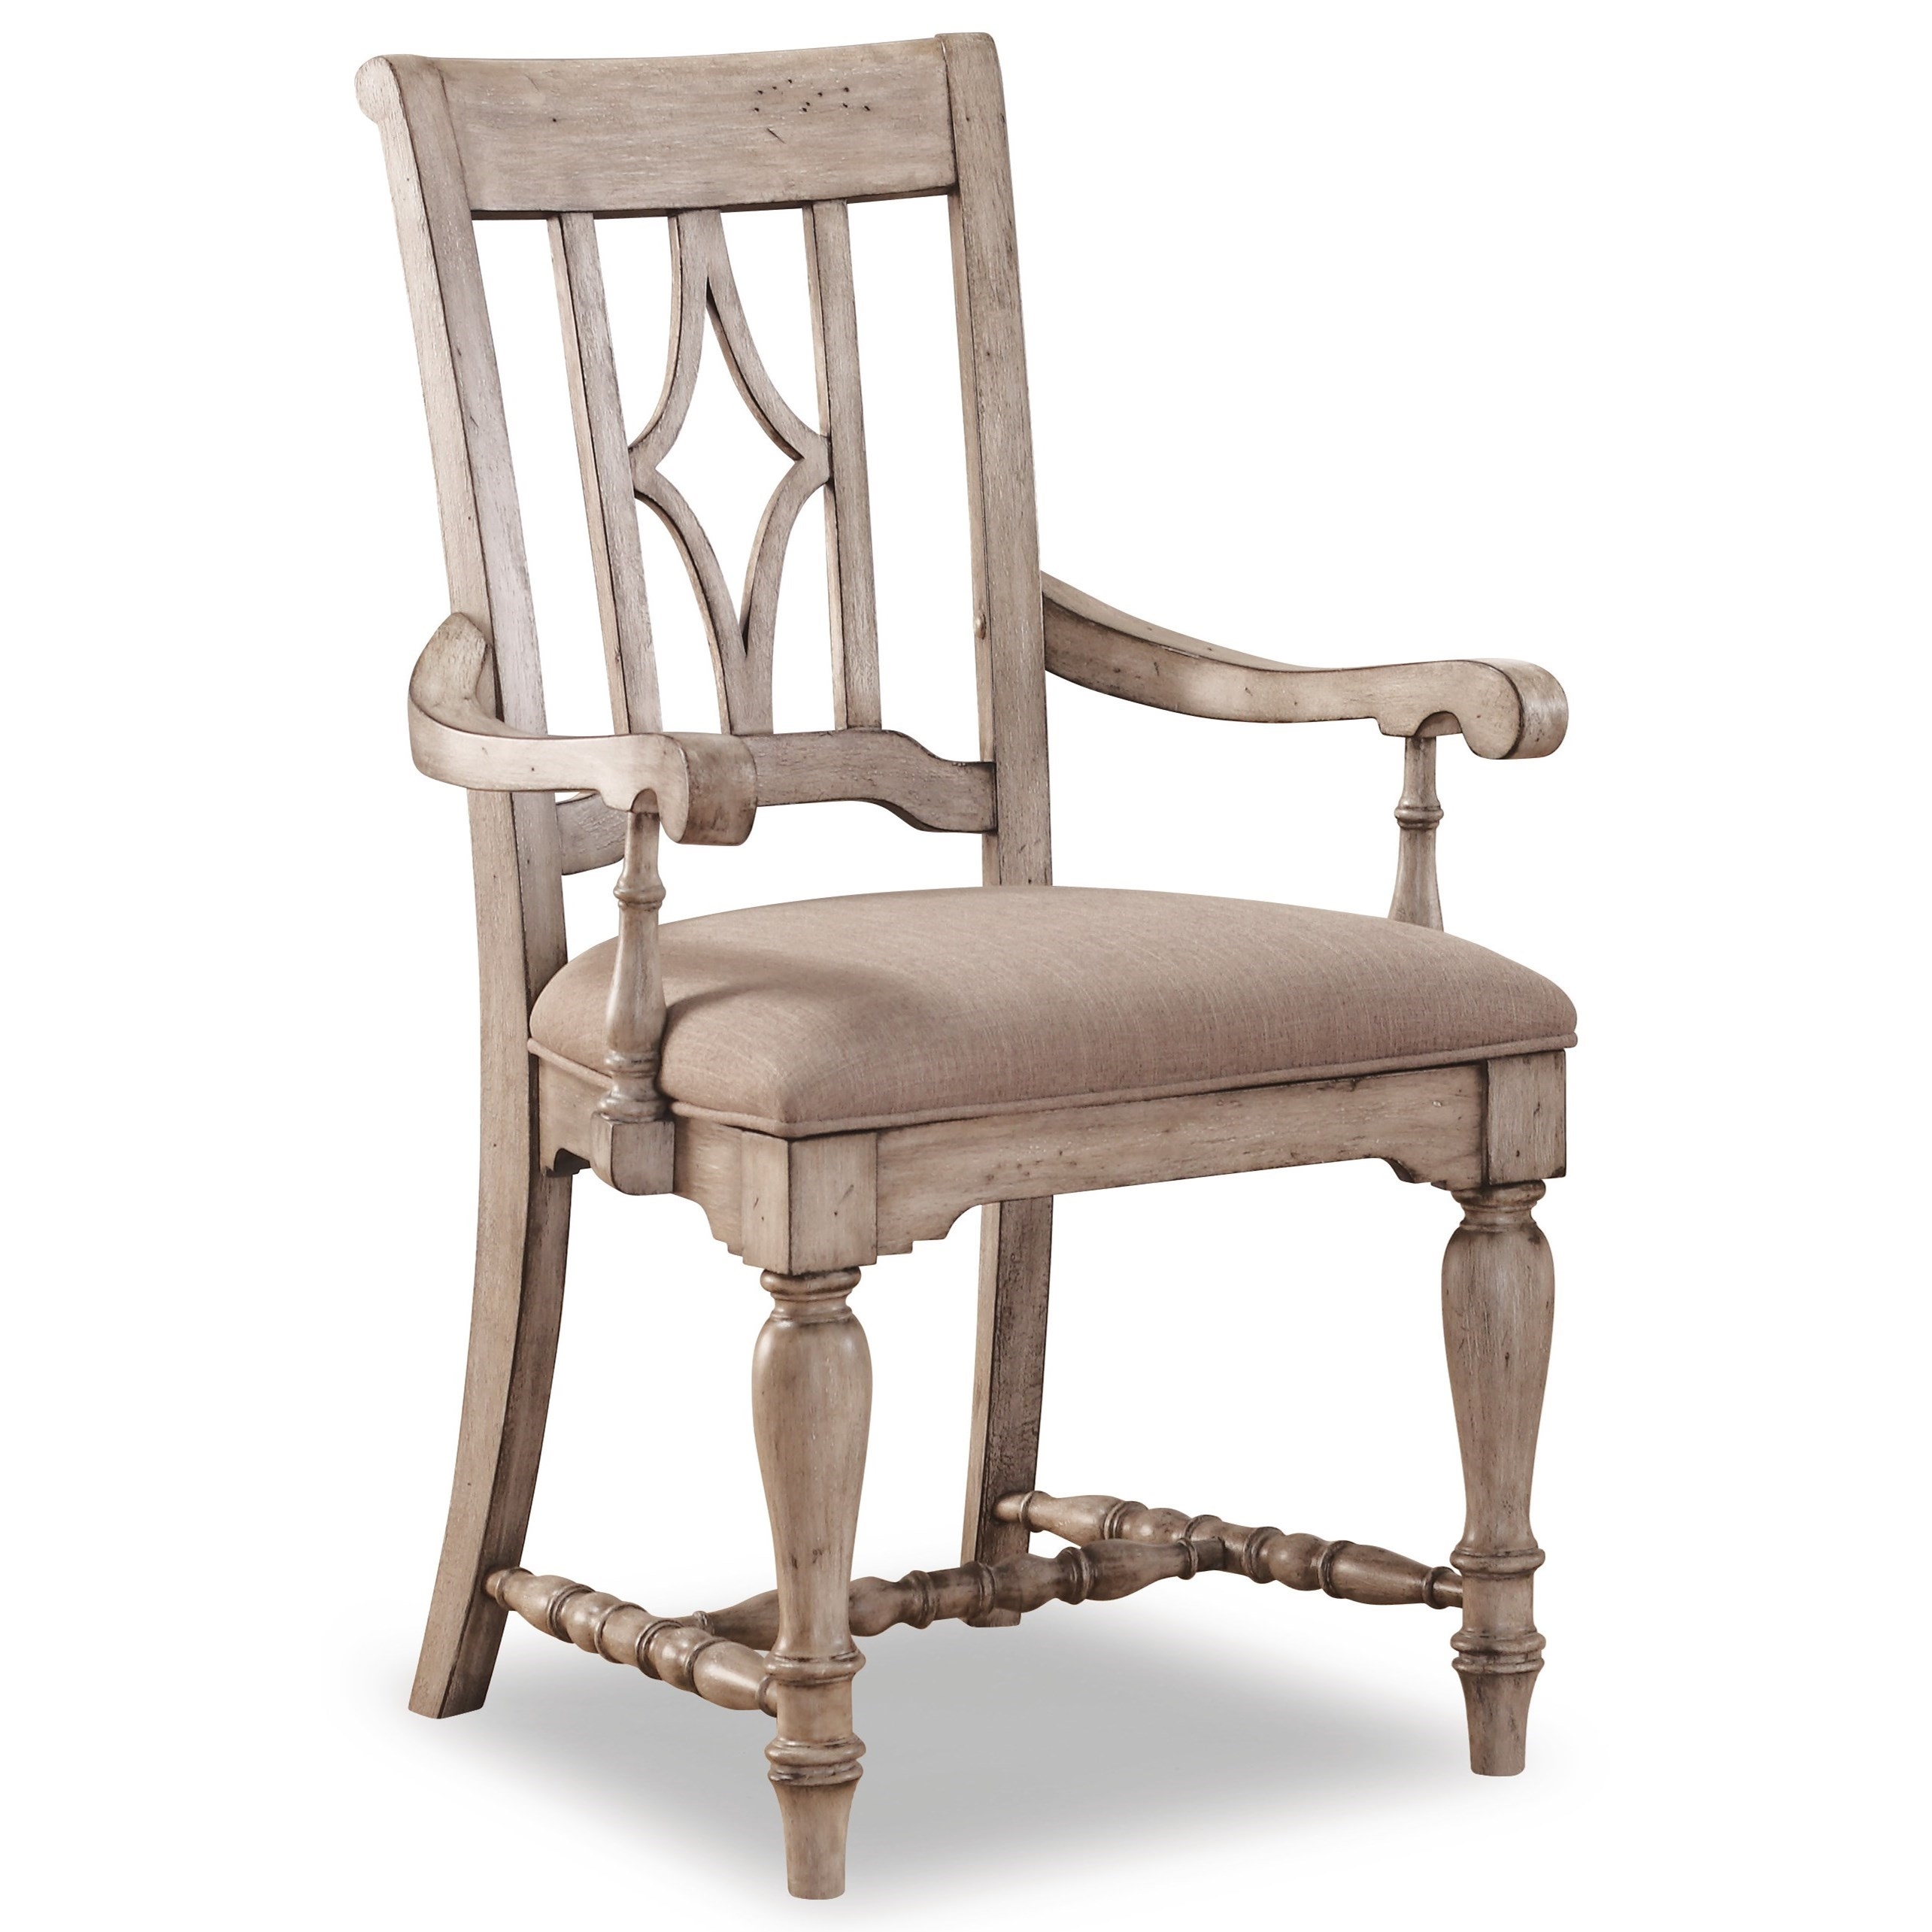 s dining chair chaise lounge cushions flexsteel wynwood collection plymouth cottage arm